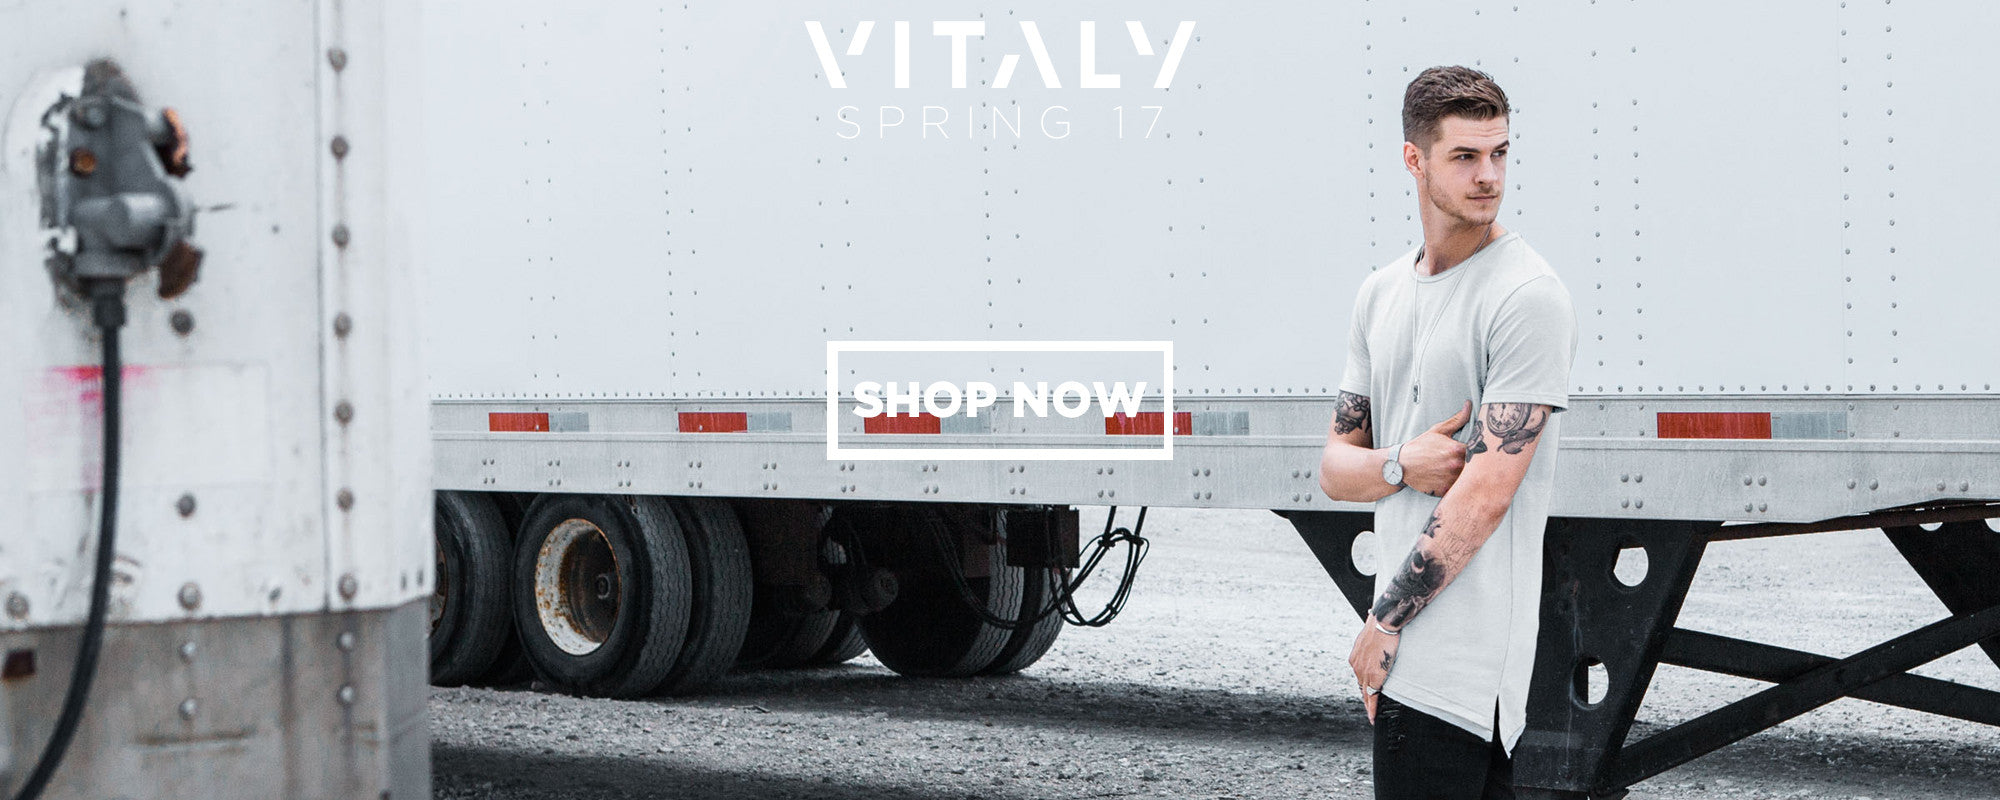 Get your hands on great urban style and streetwear style with Vitaly clothing and jewelry!